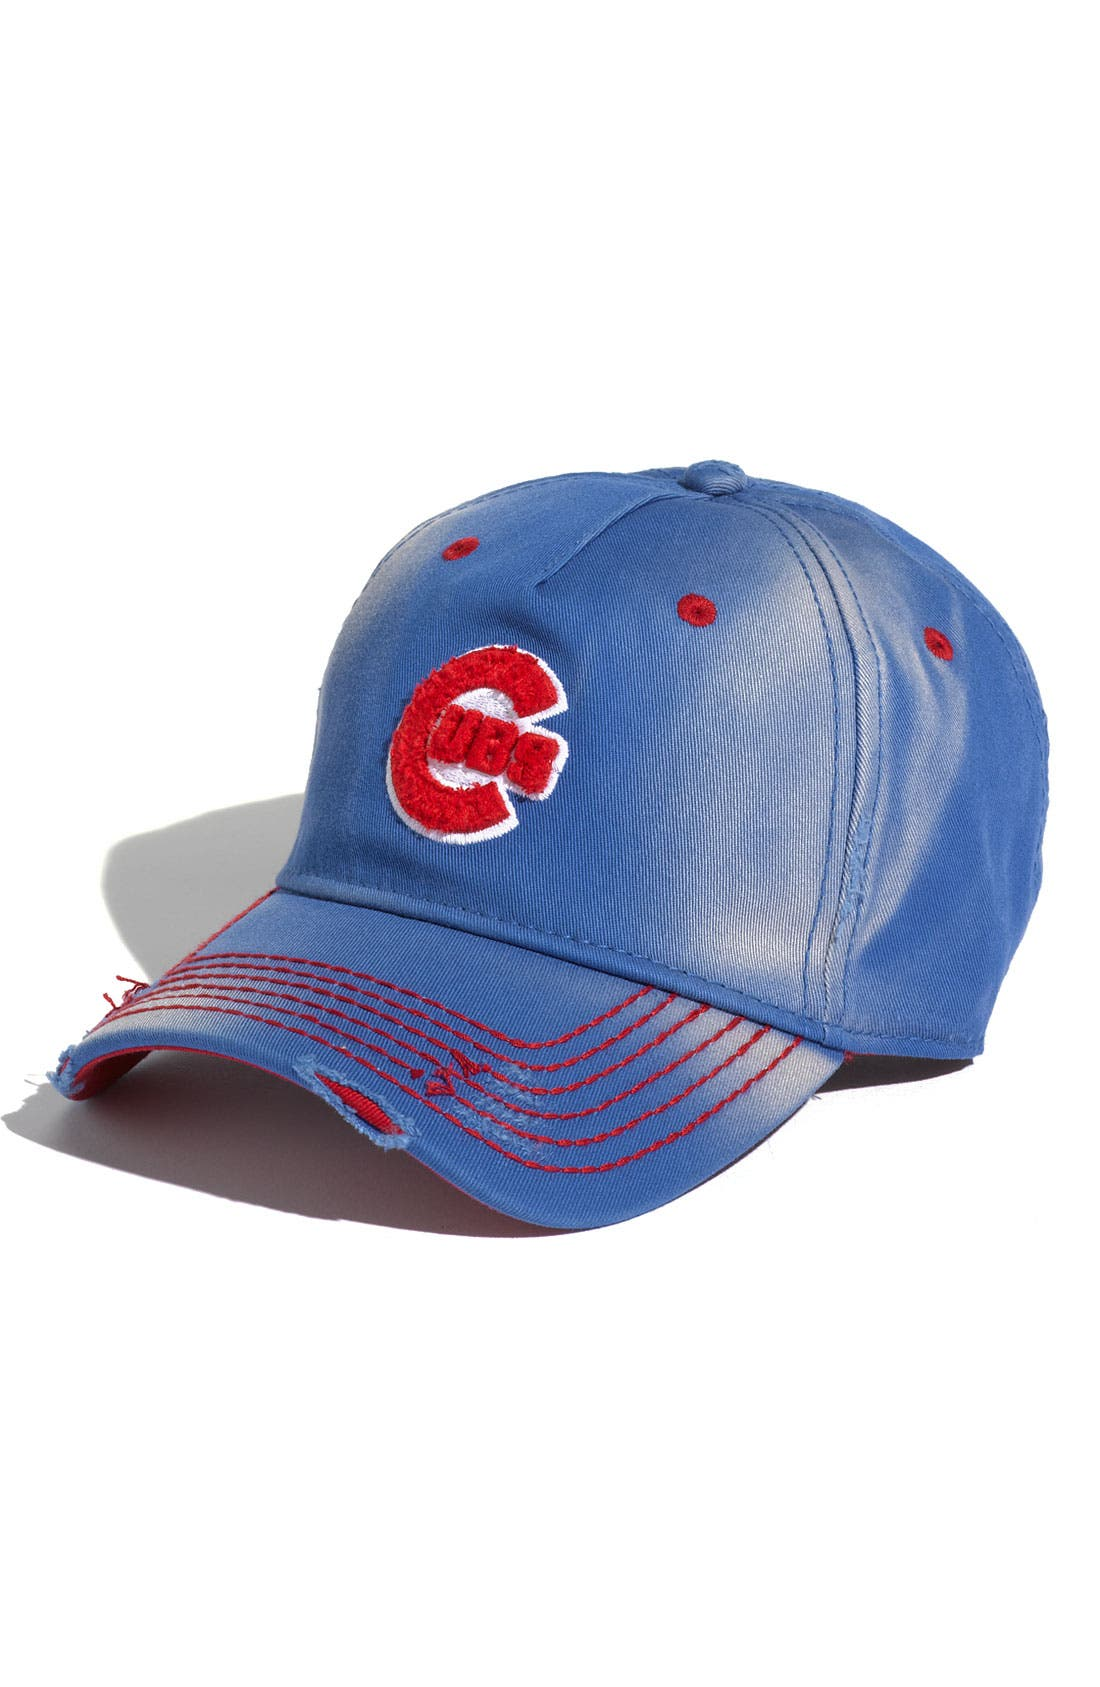 Main Image - American Needle 'Chicago Cubs' Distressed Cap